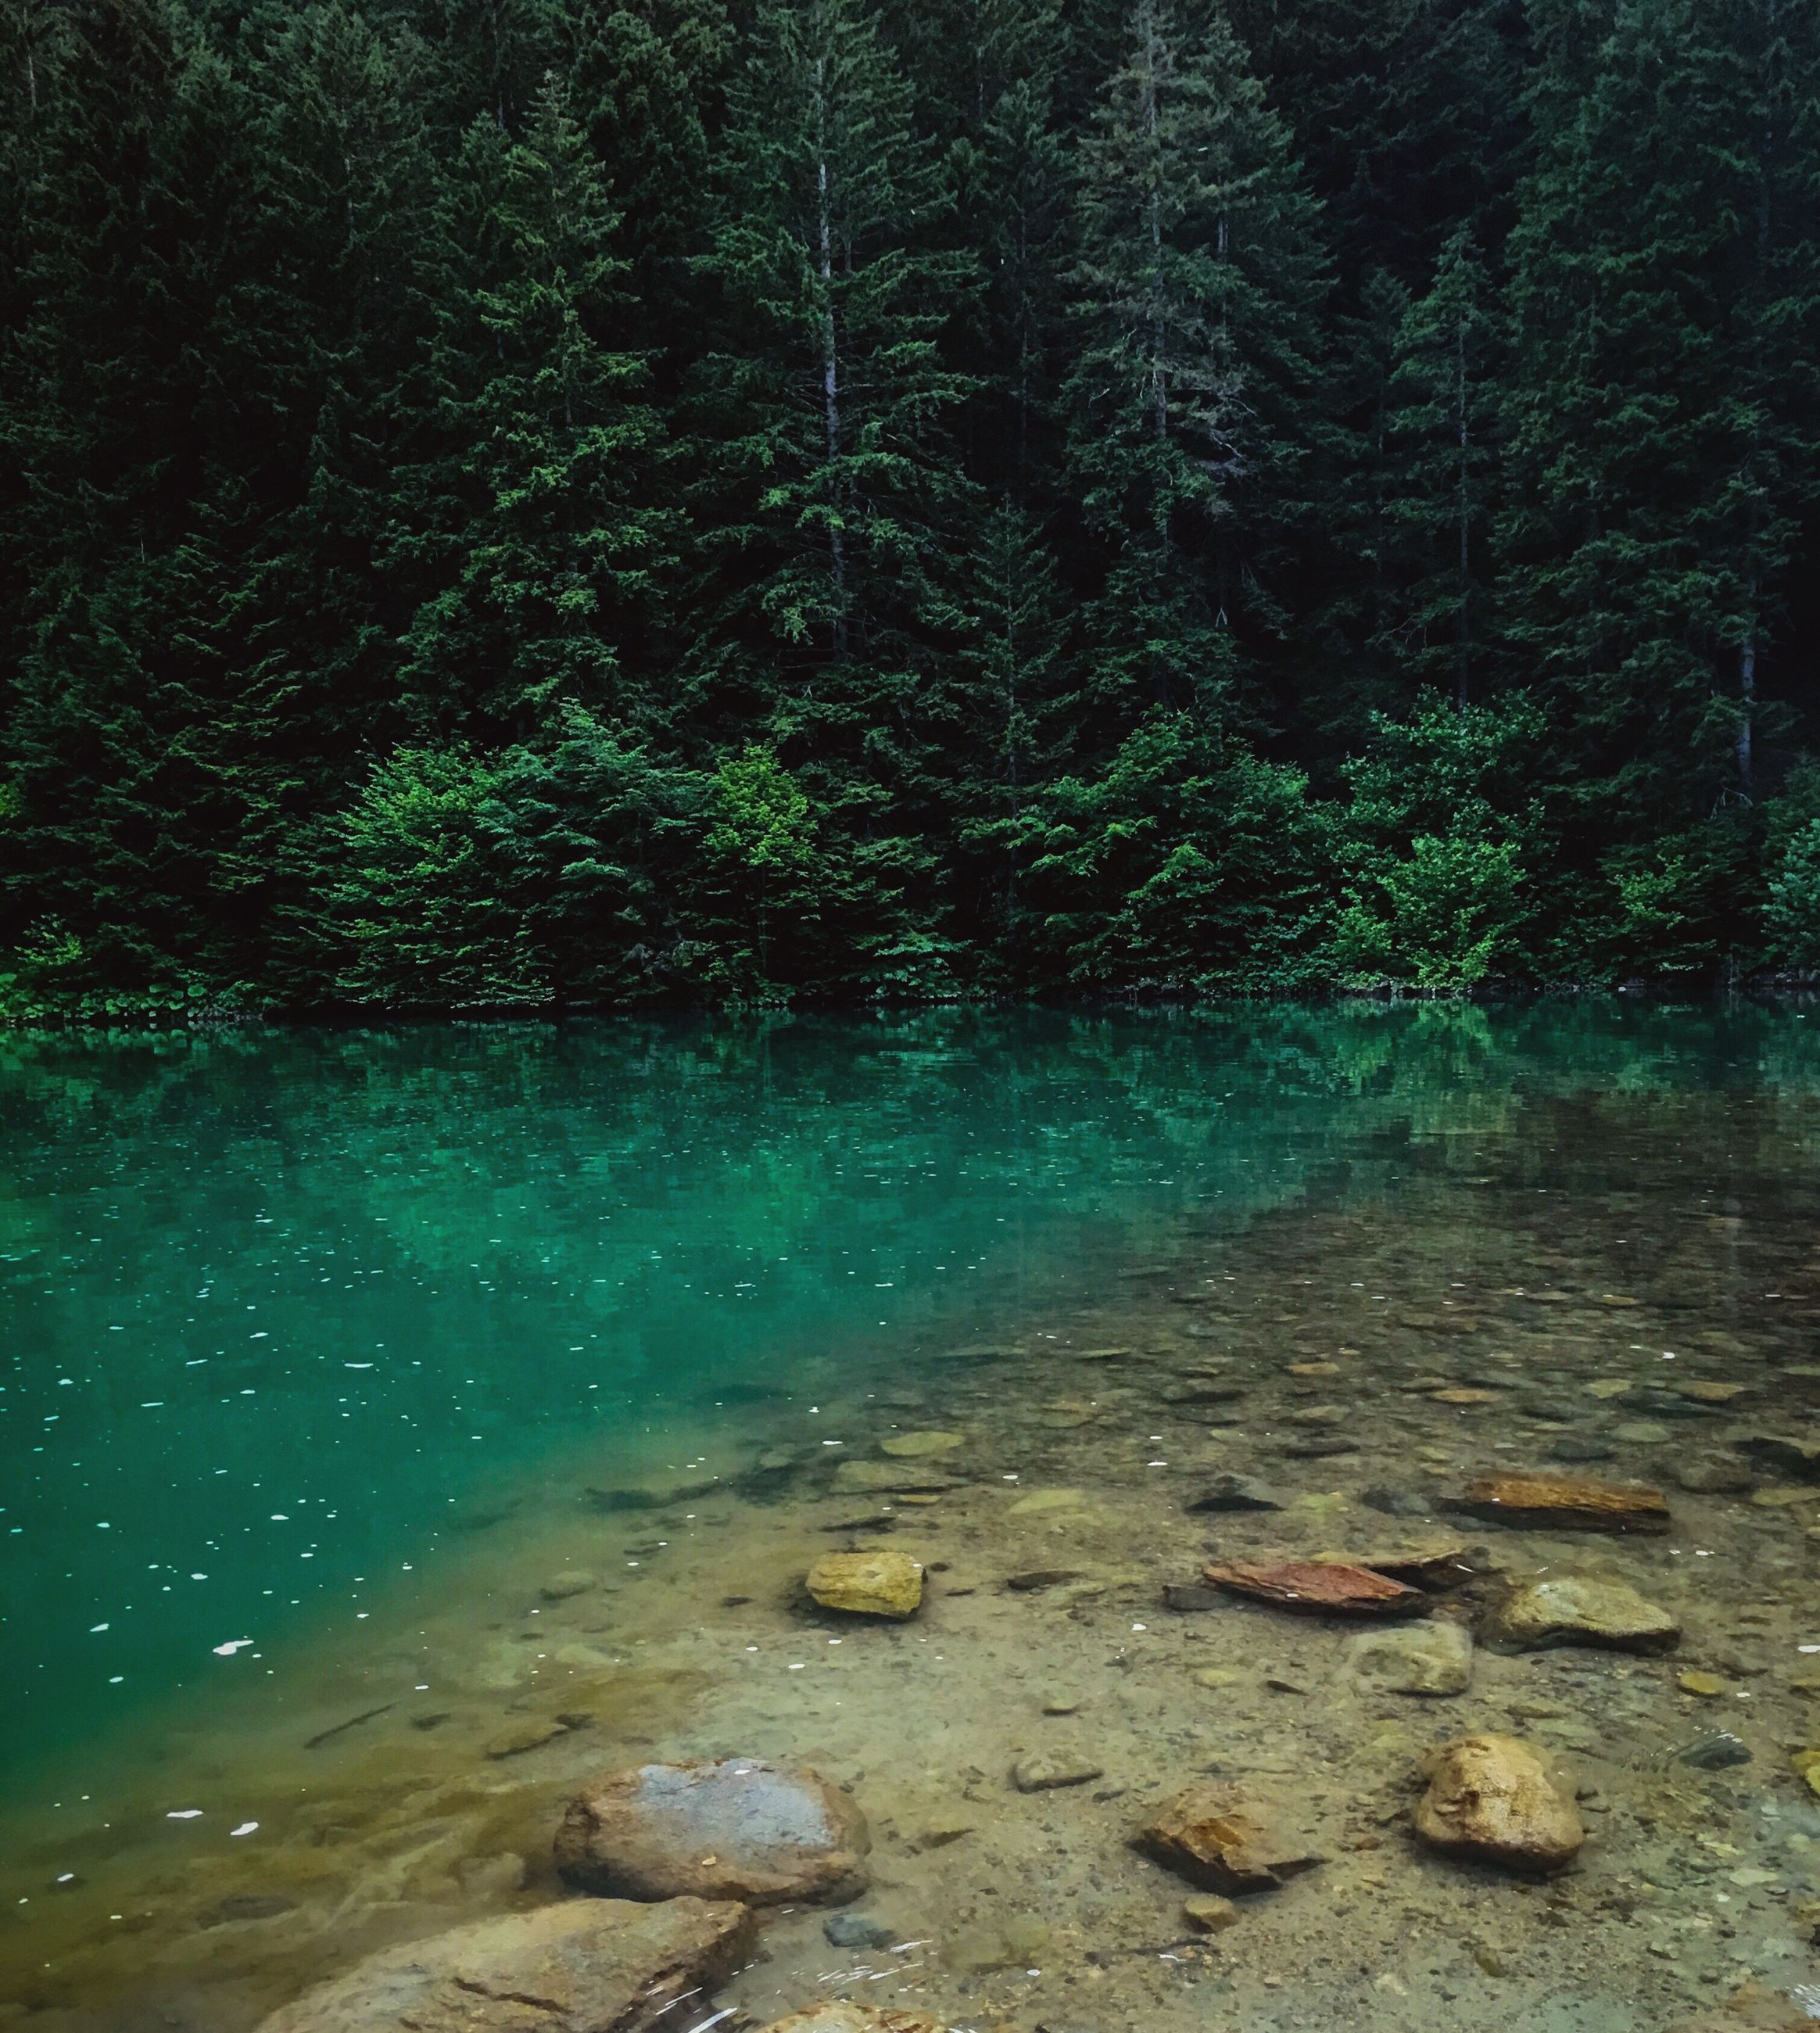 water, nature, tree, forest, no people, tranquility, outdoors, beauty in nature, day